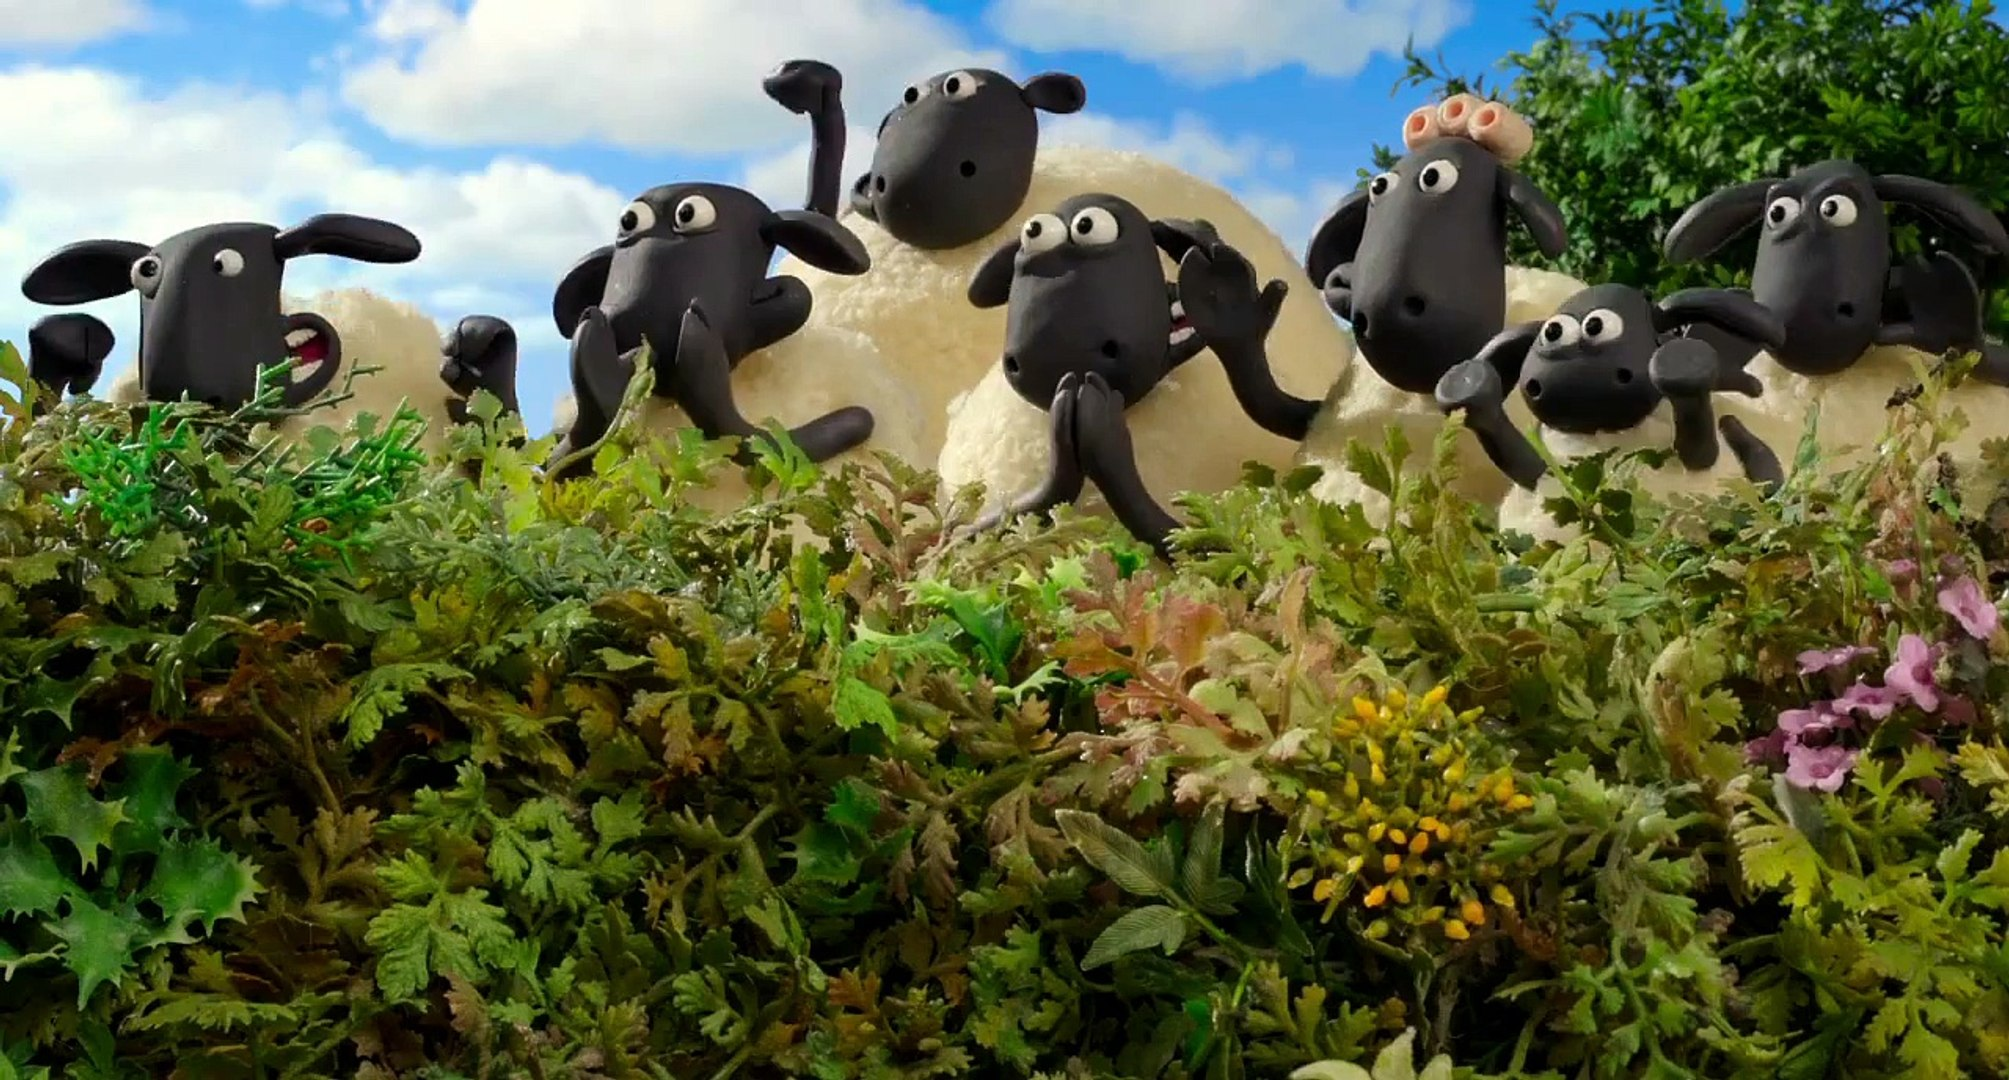 2015 Movie Trailer - Shaun the Sheep Movie Official Trailer #1  -  Animated Movie HD